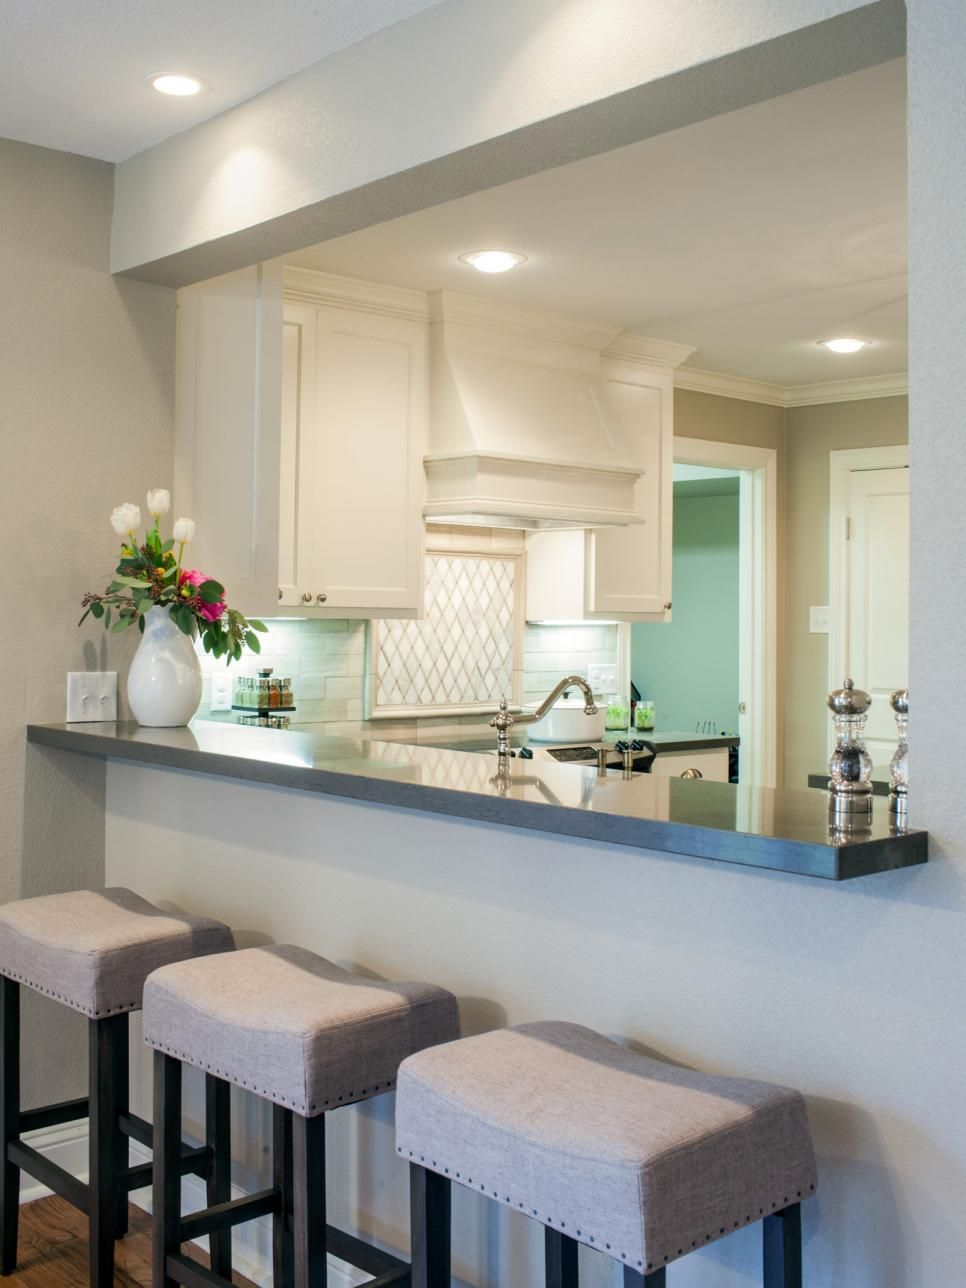 Kitchen Makeover Ideas From Fixer Upper | Family gatherings, Hgtv ...